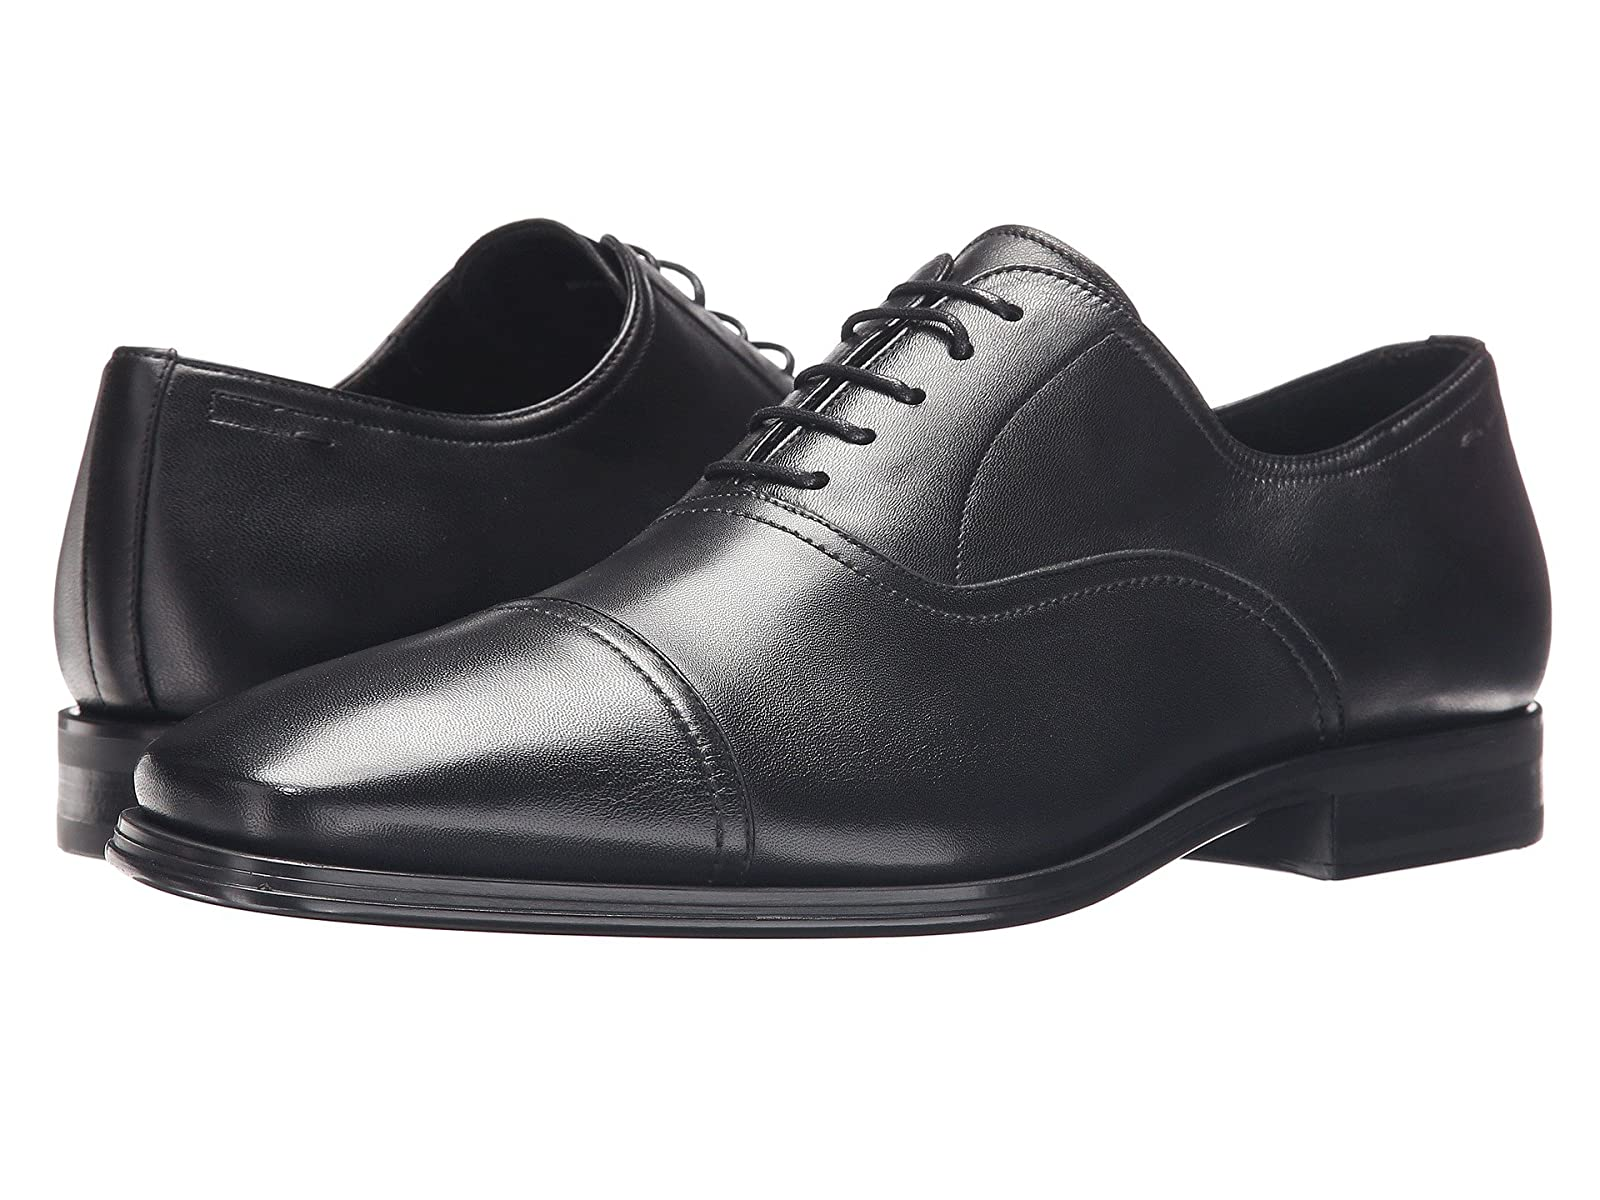 """Magnanni Mateo """"Lineo Merino""""Atmospheric grades have affordable shoes"""